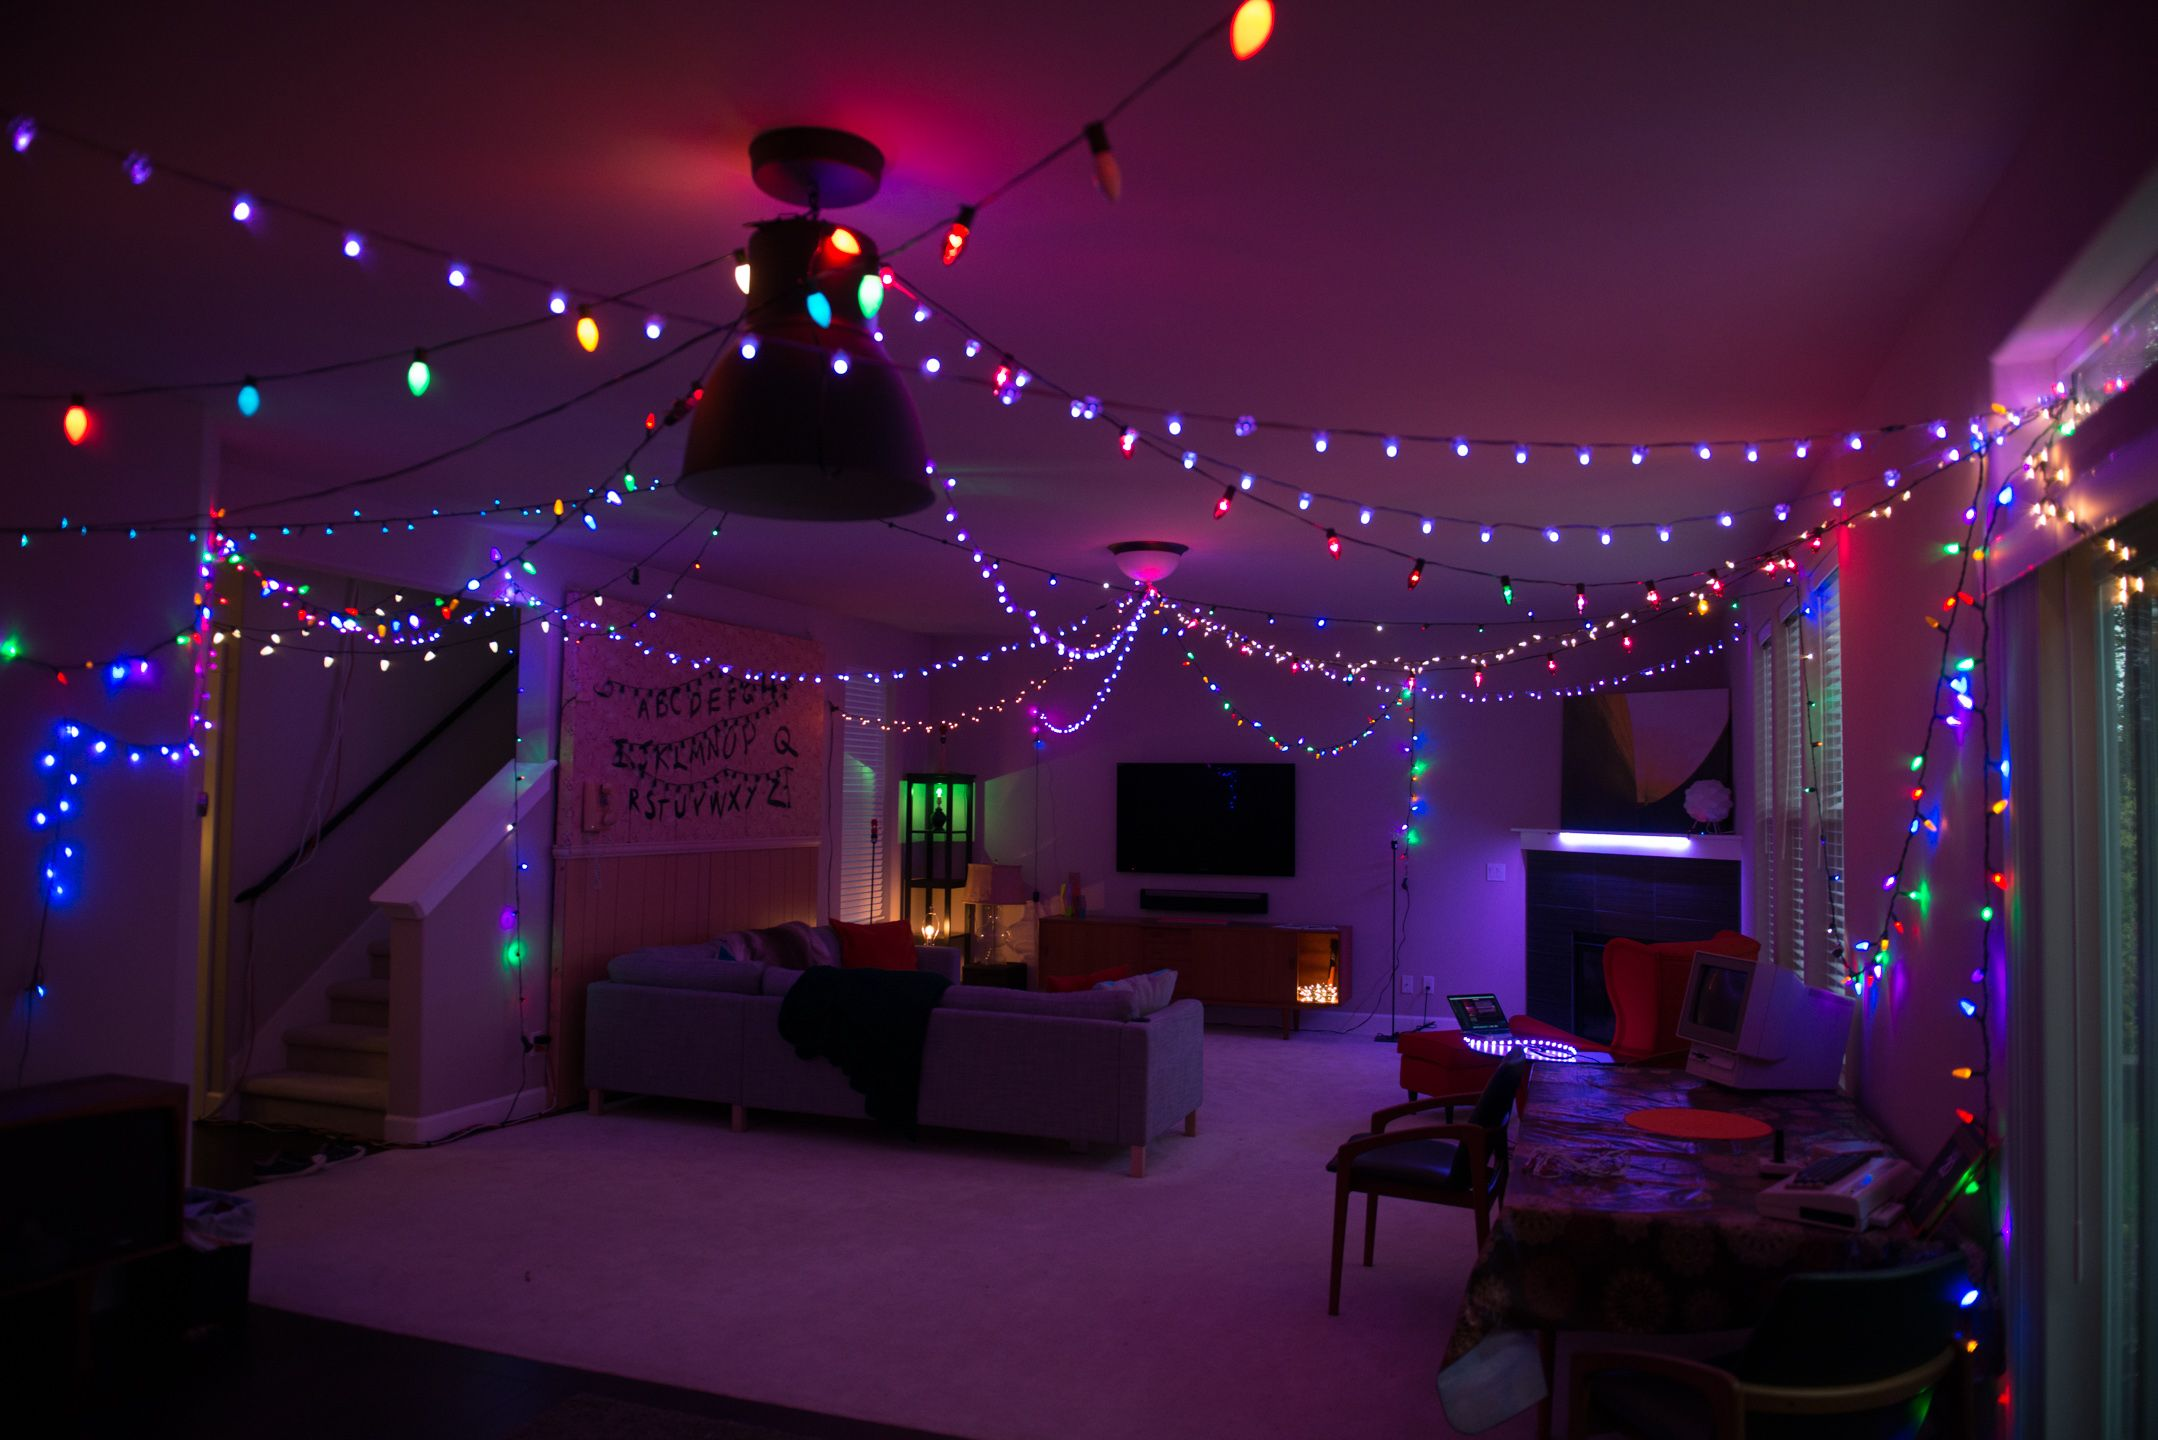 Stranger Things Party Halloween decor